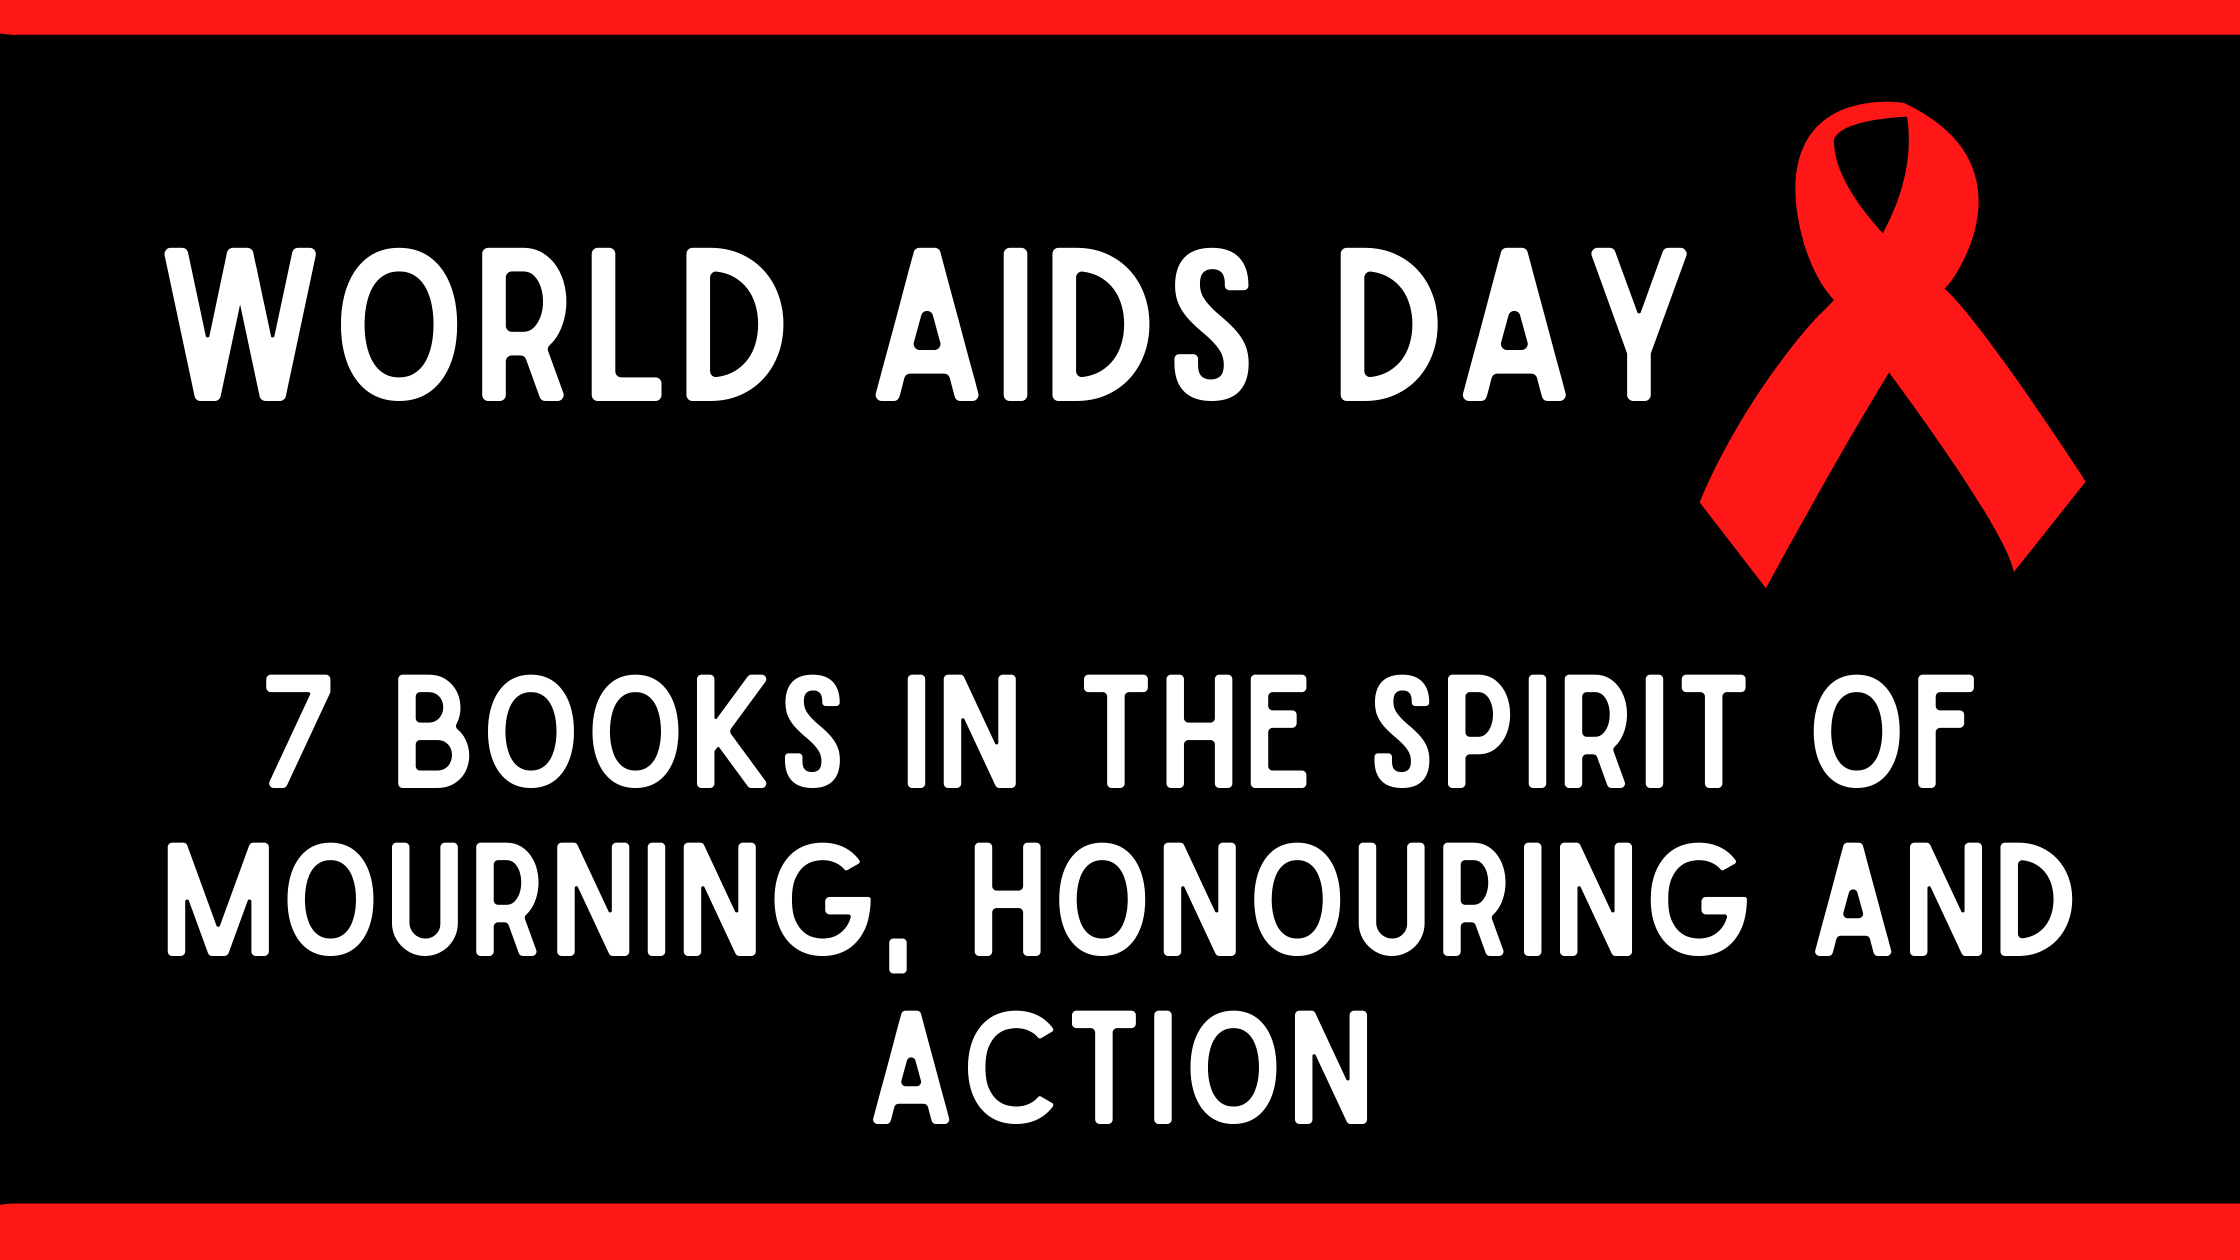 7 books in the spirit of mourning, honouring and action